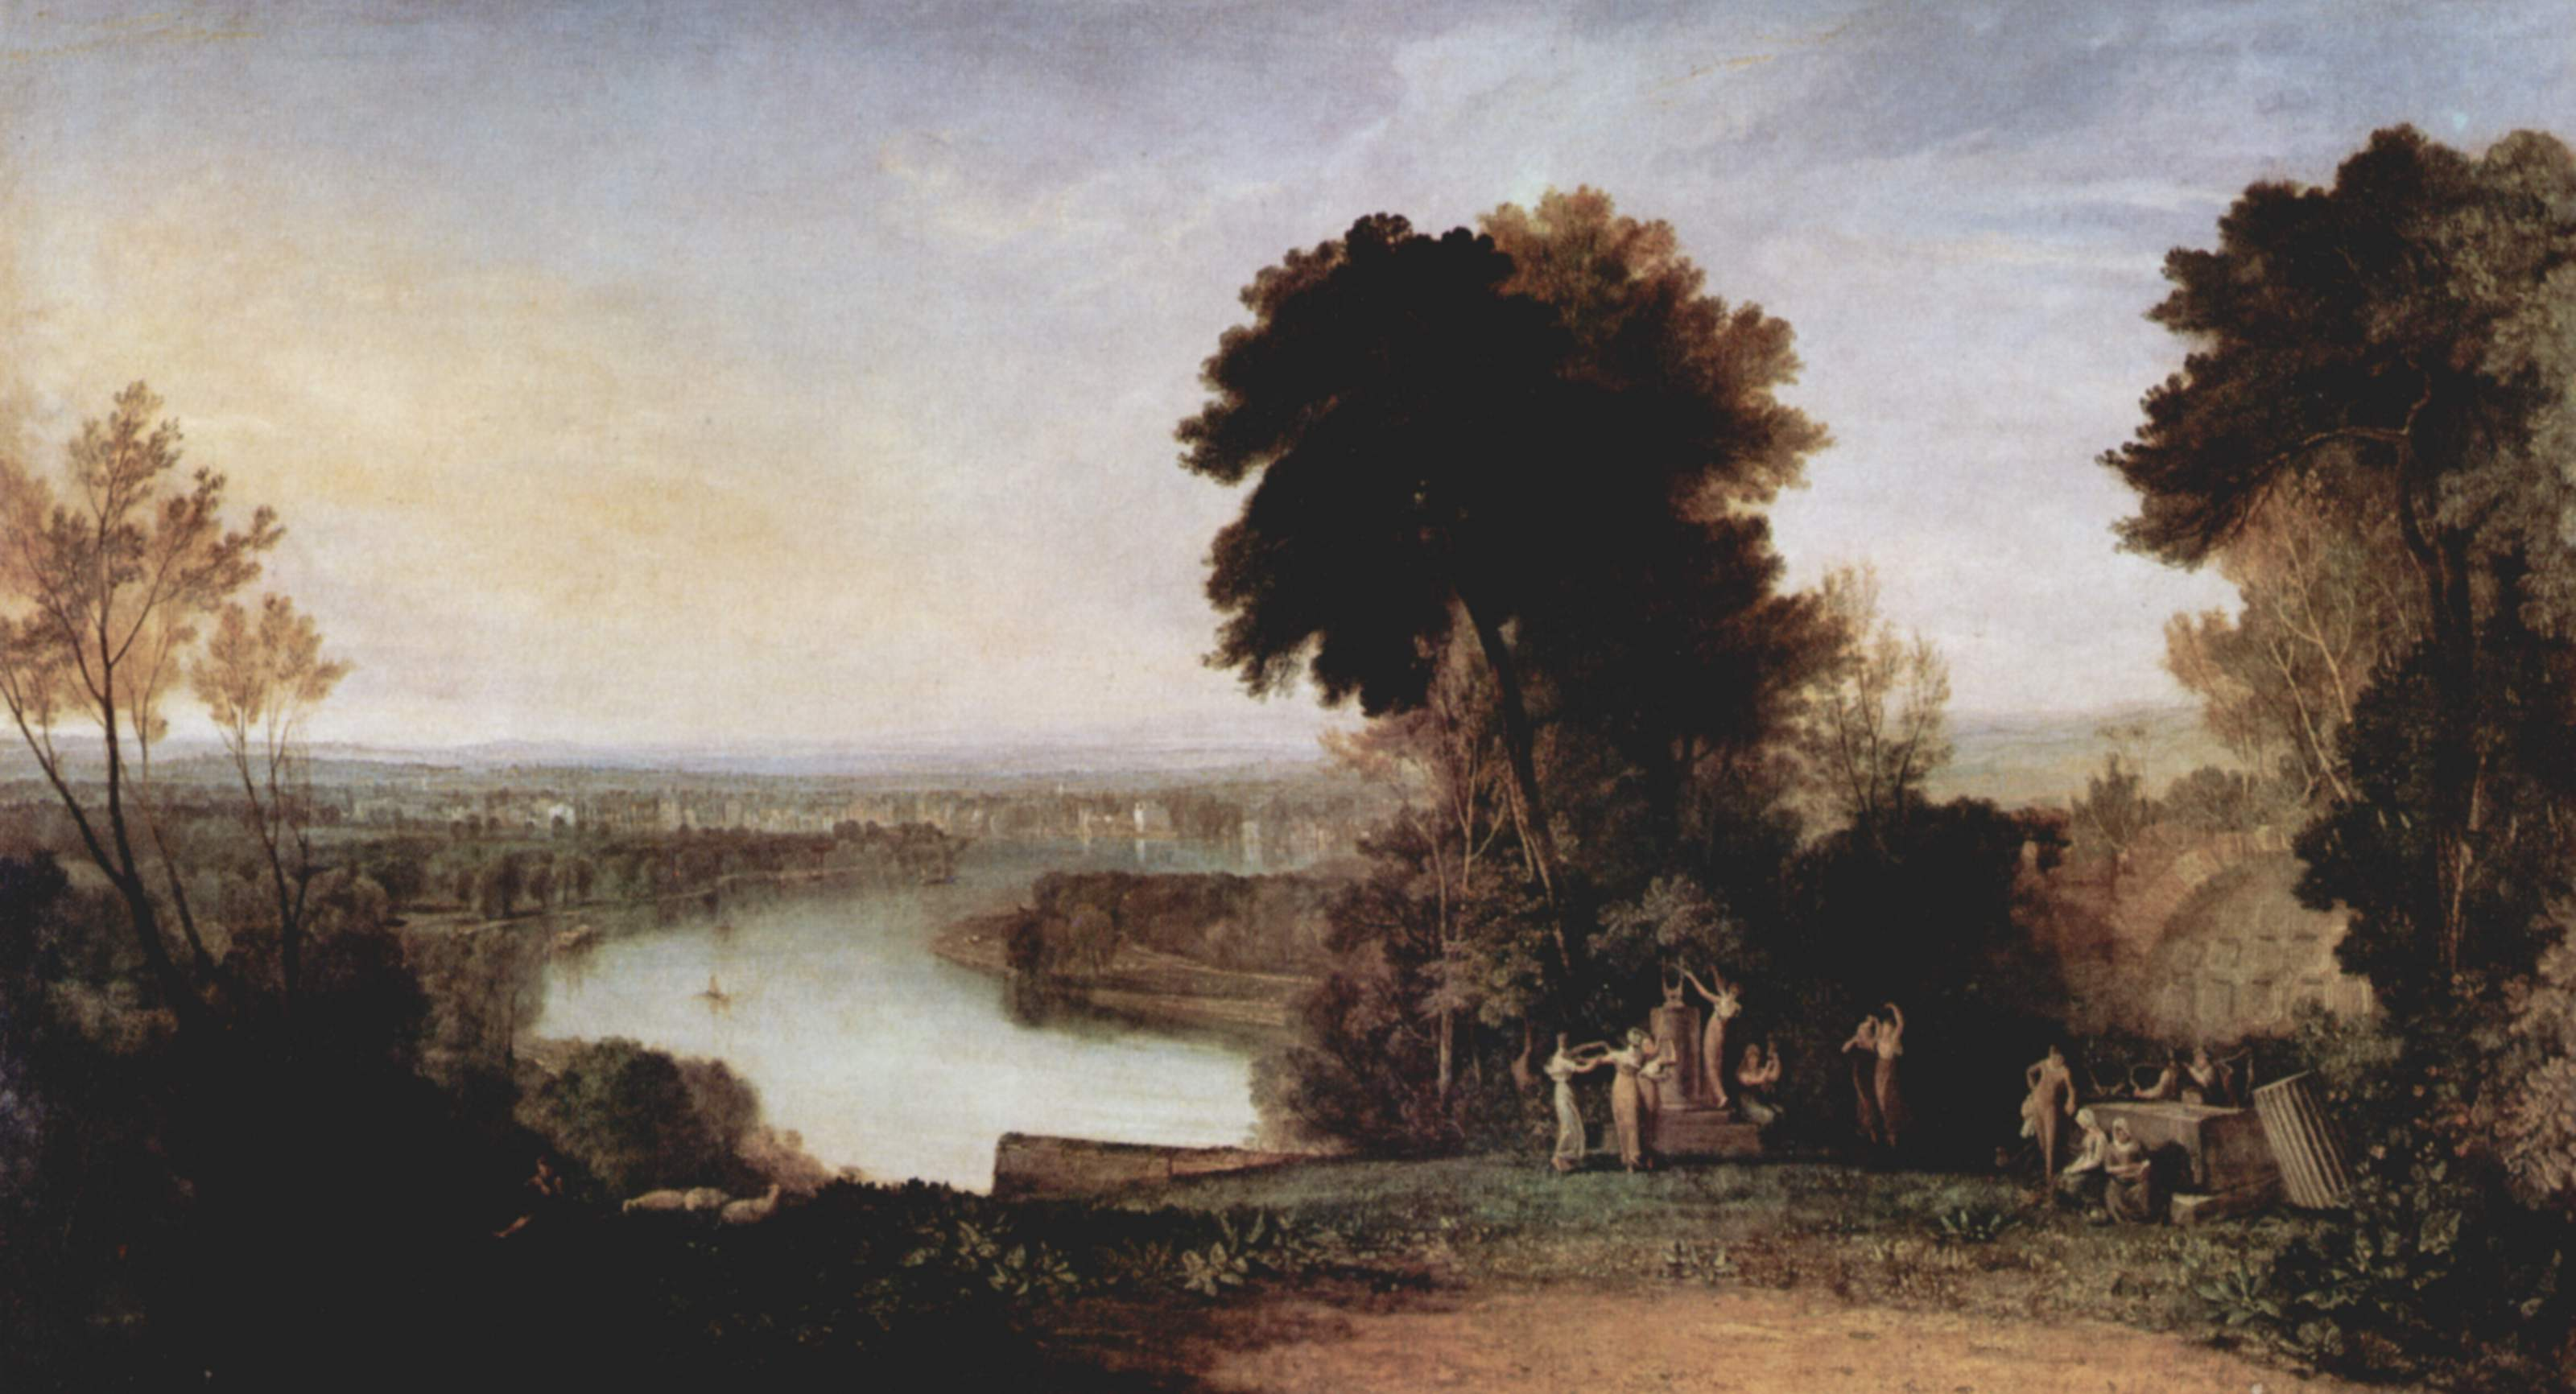 joseph_mallord_william_turner_086